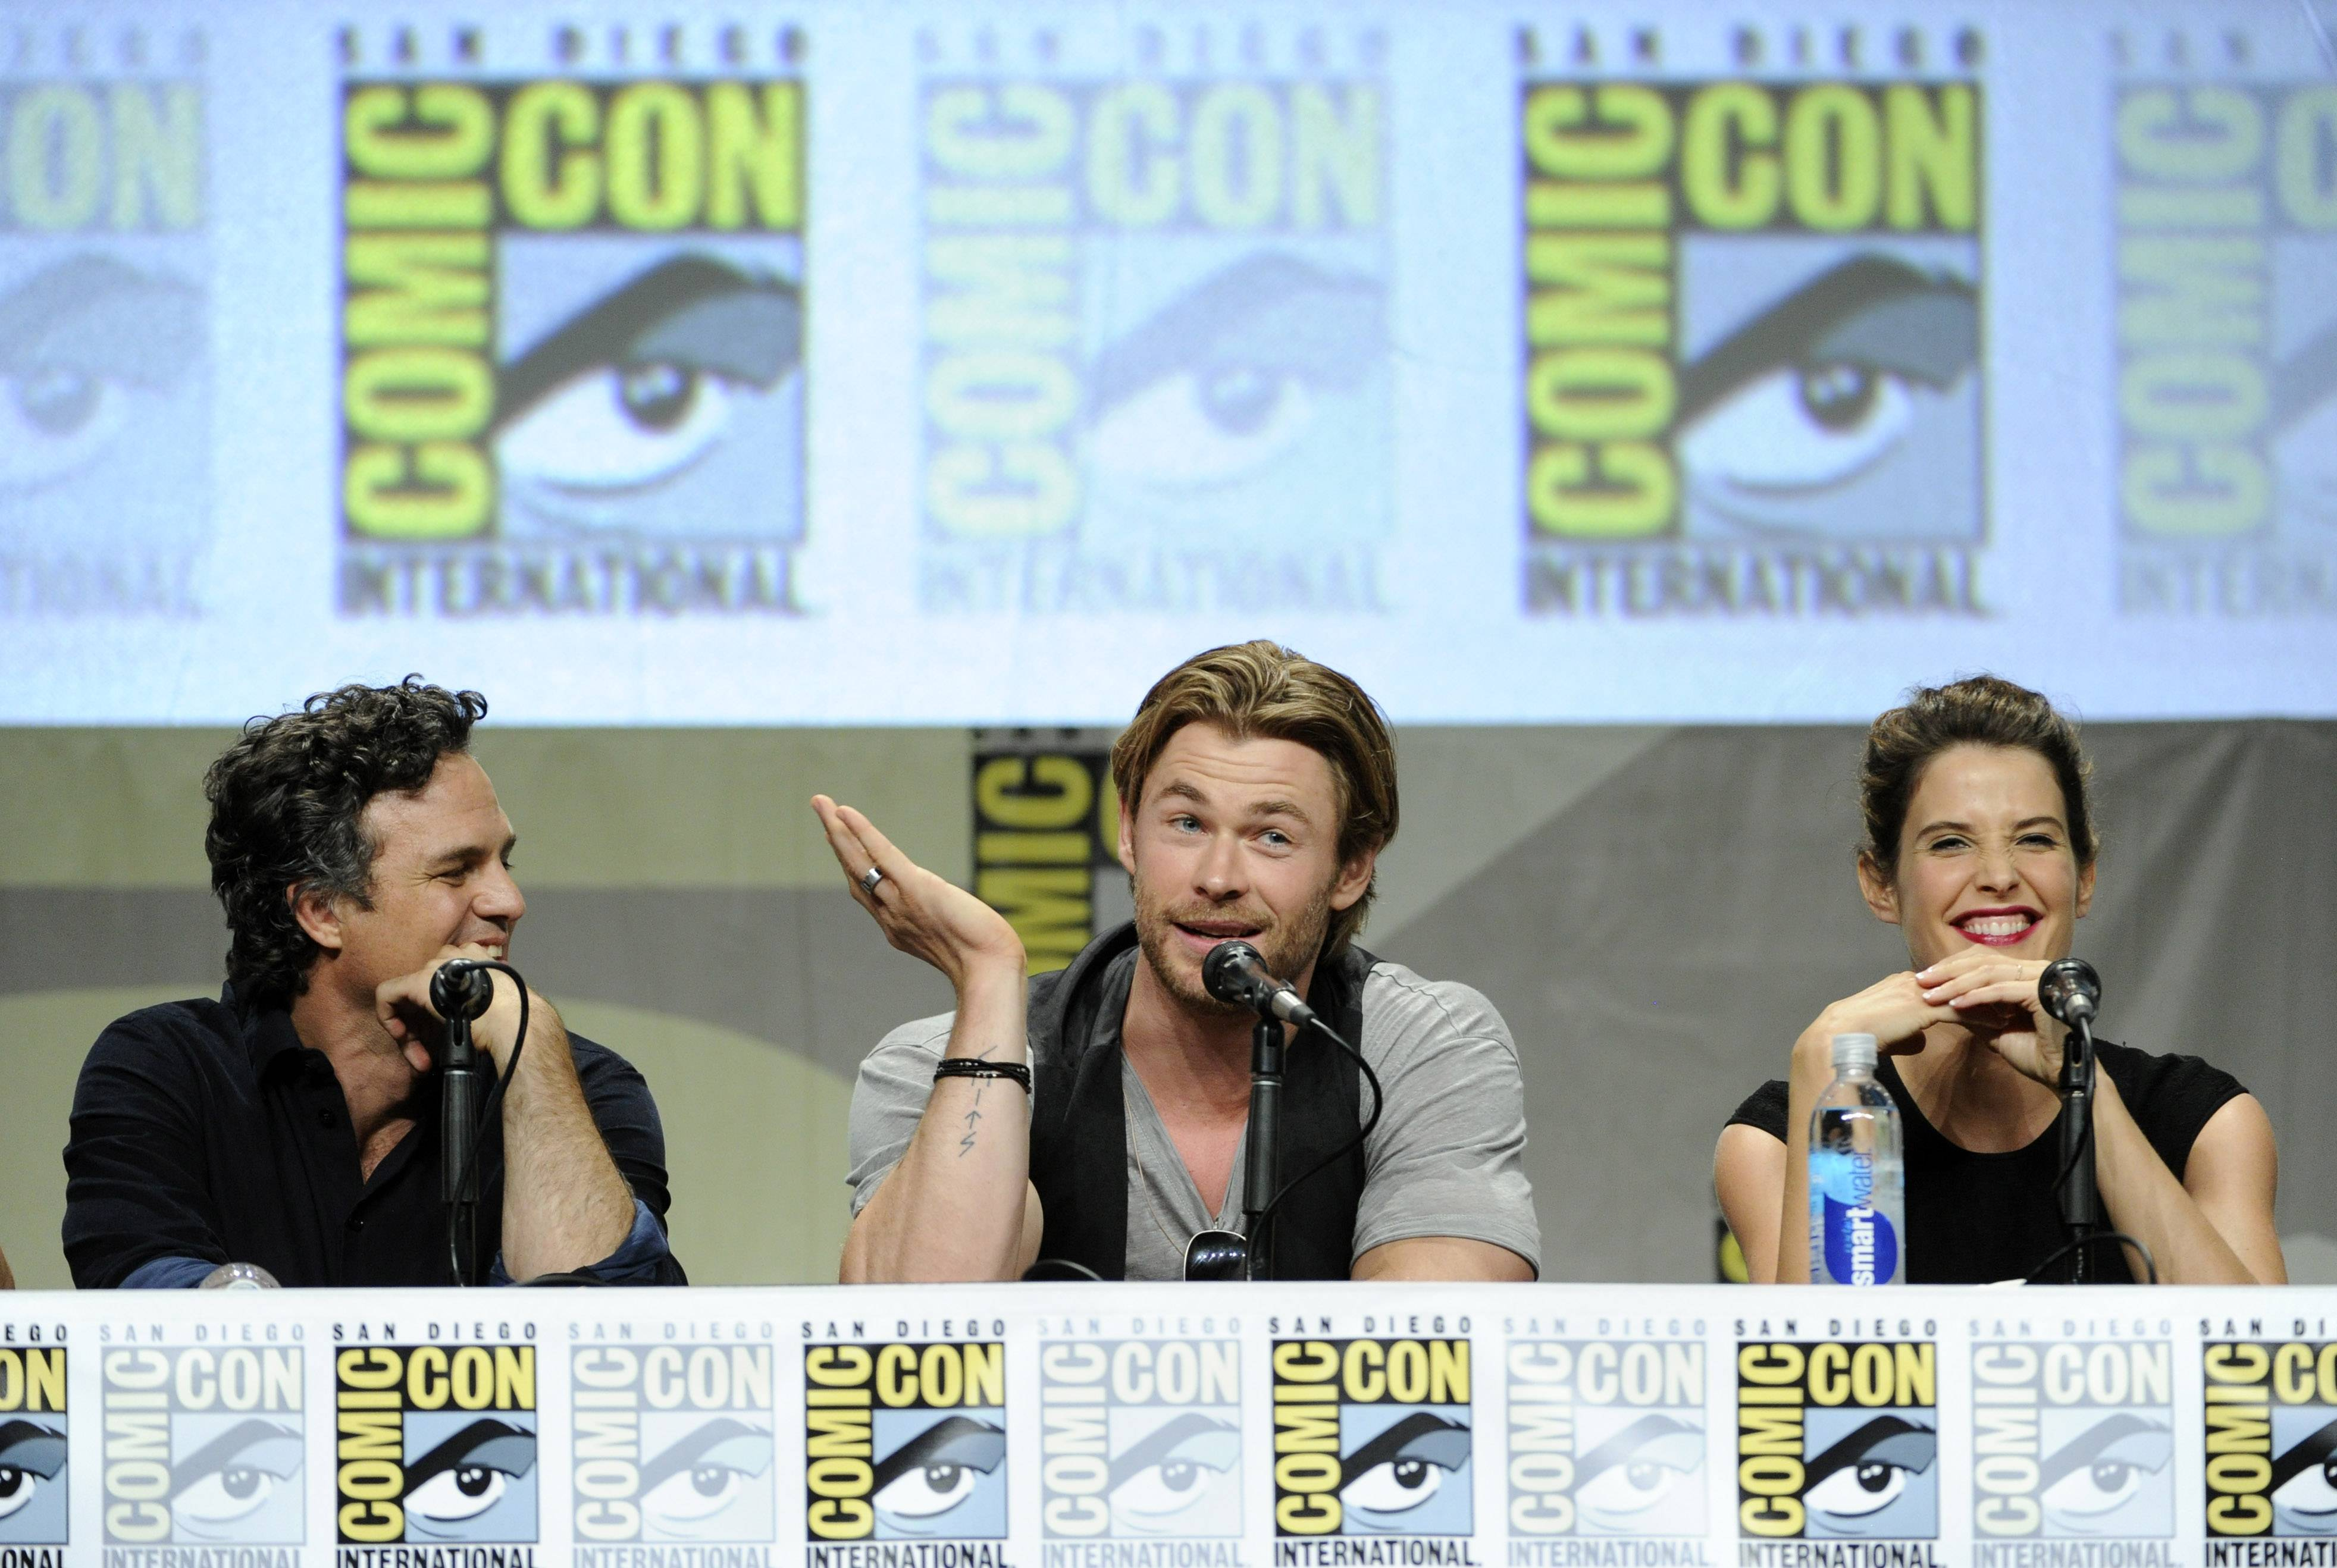 Actors Mark Ruffalo, left, Chris Hemsworth, center, and Cobie Smulders take part in the Marvel panel at Comic-Con International on Saturday.